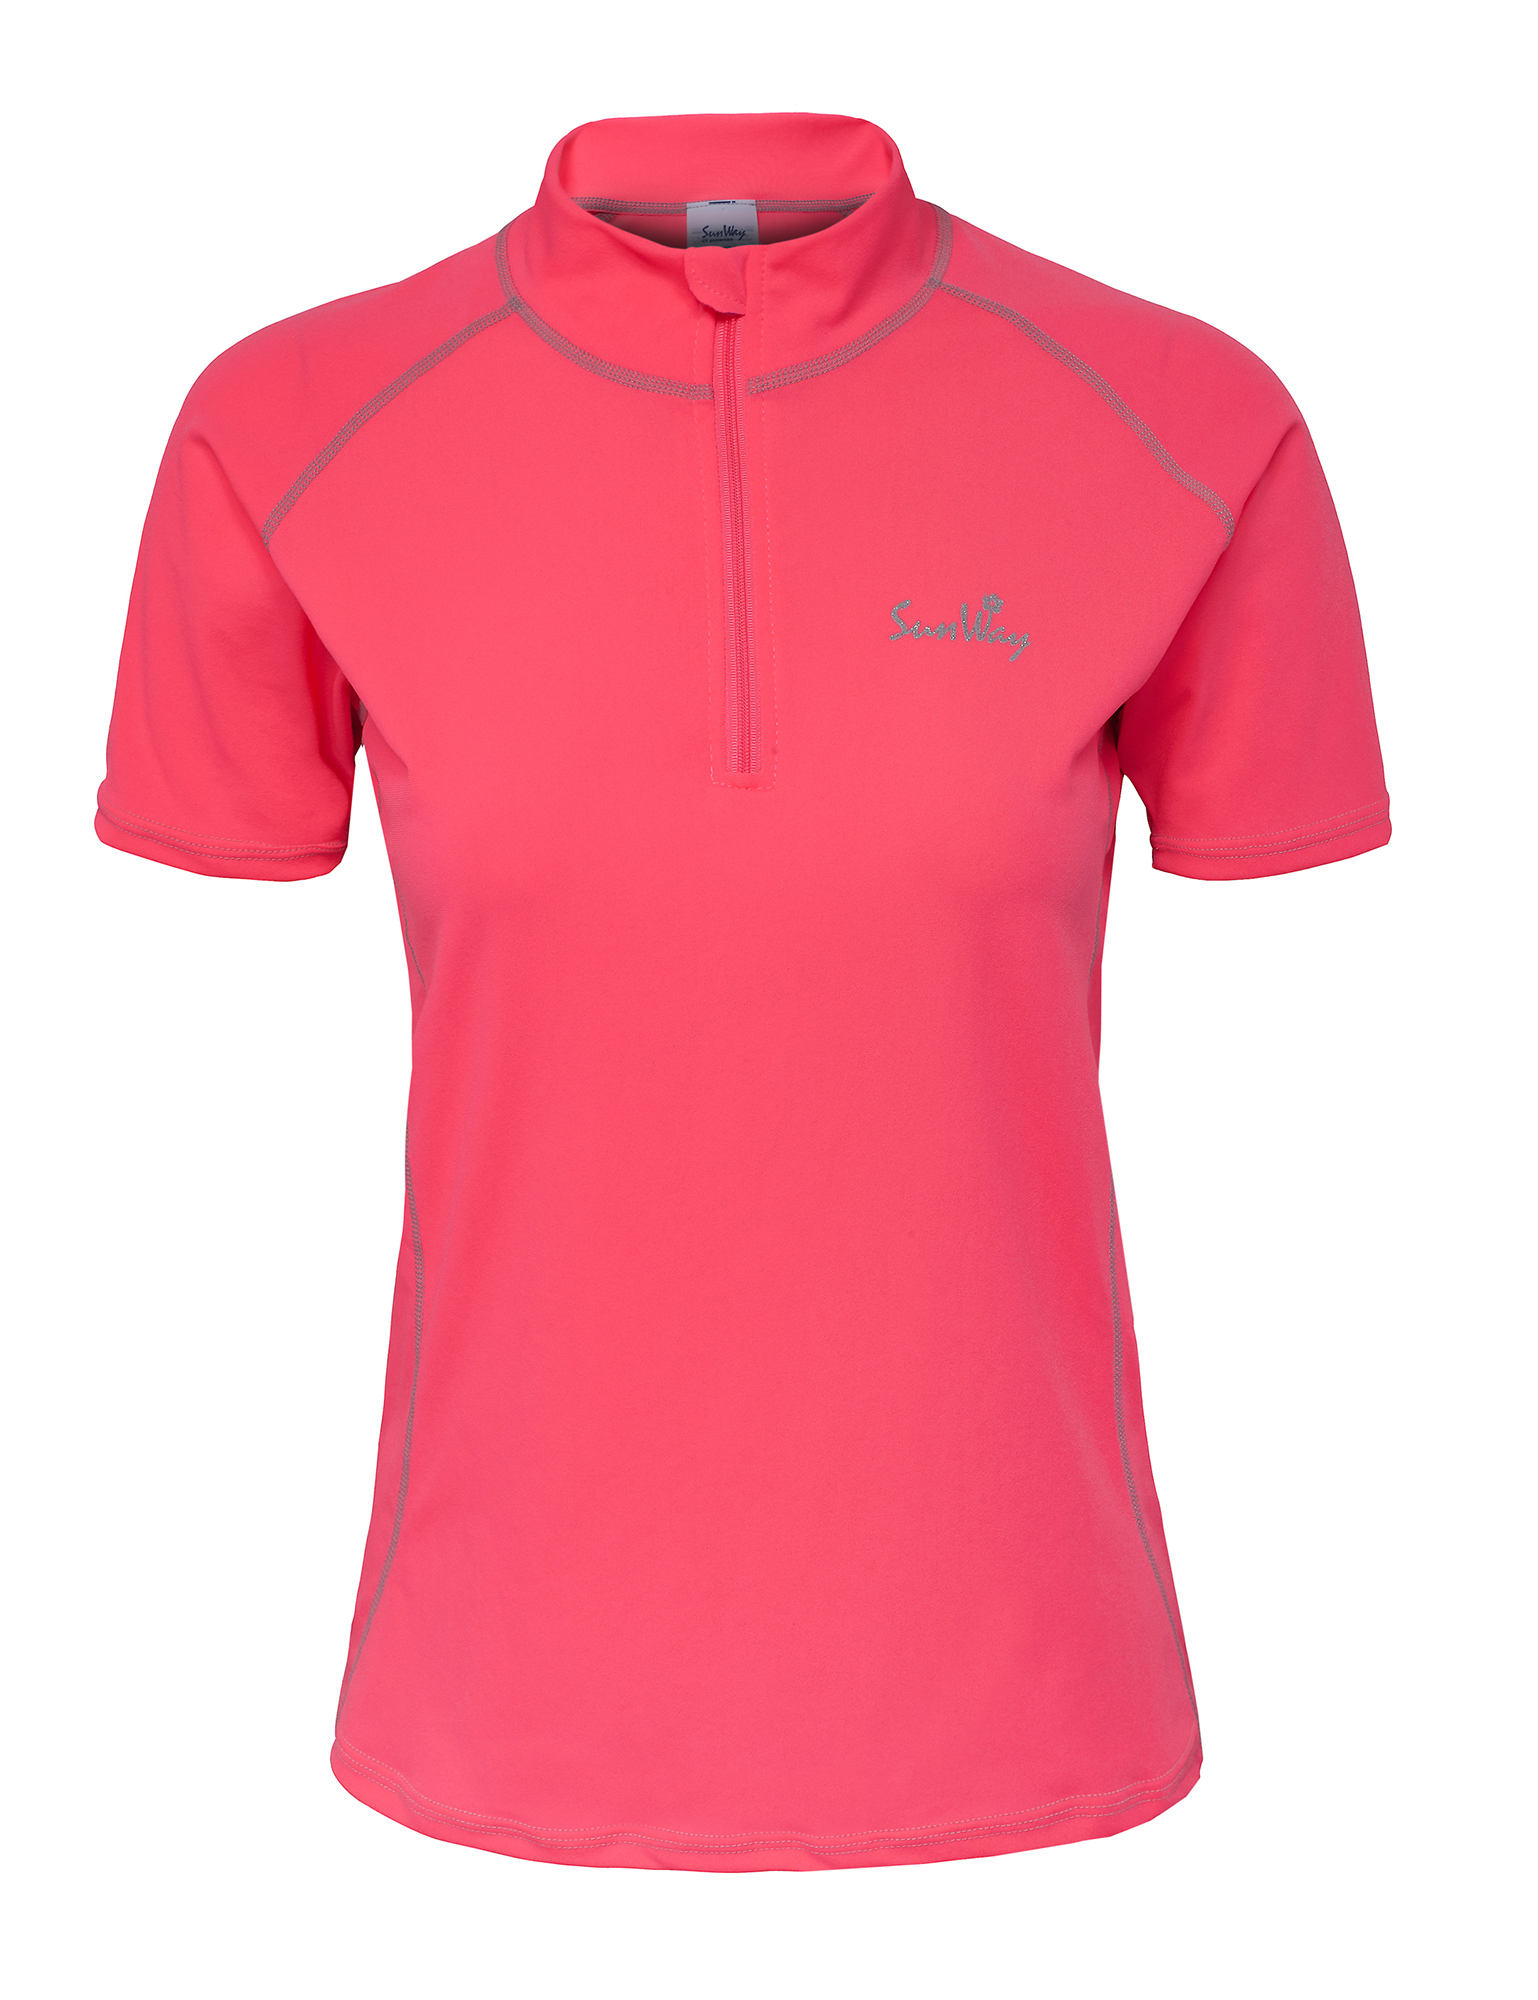 Buy women's UV sun protection shirts & rash guards at Coolibar. Our women's long sleeve sun protective swim shirts & rash guards are all lightweight, breathable and built to move with you.